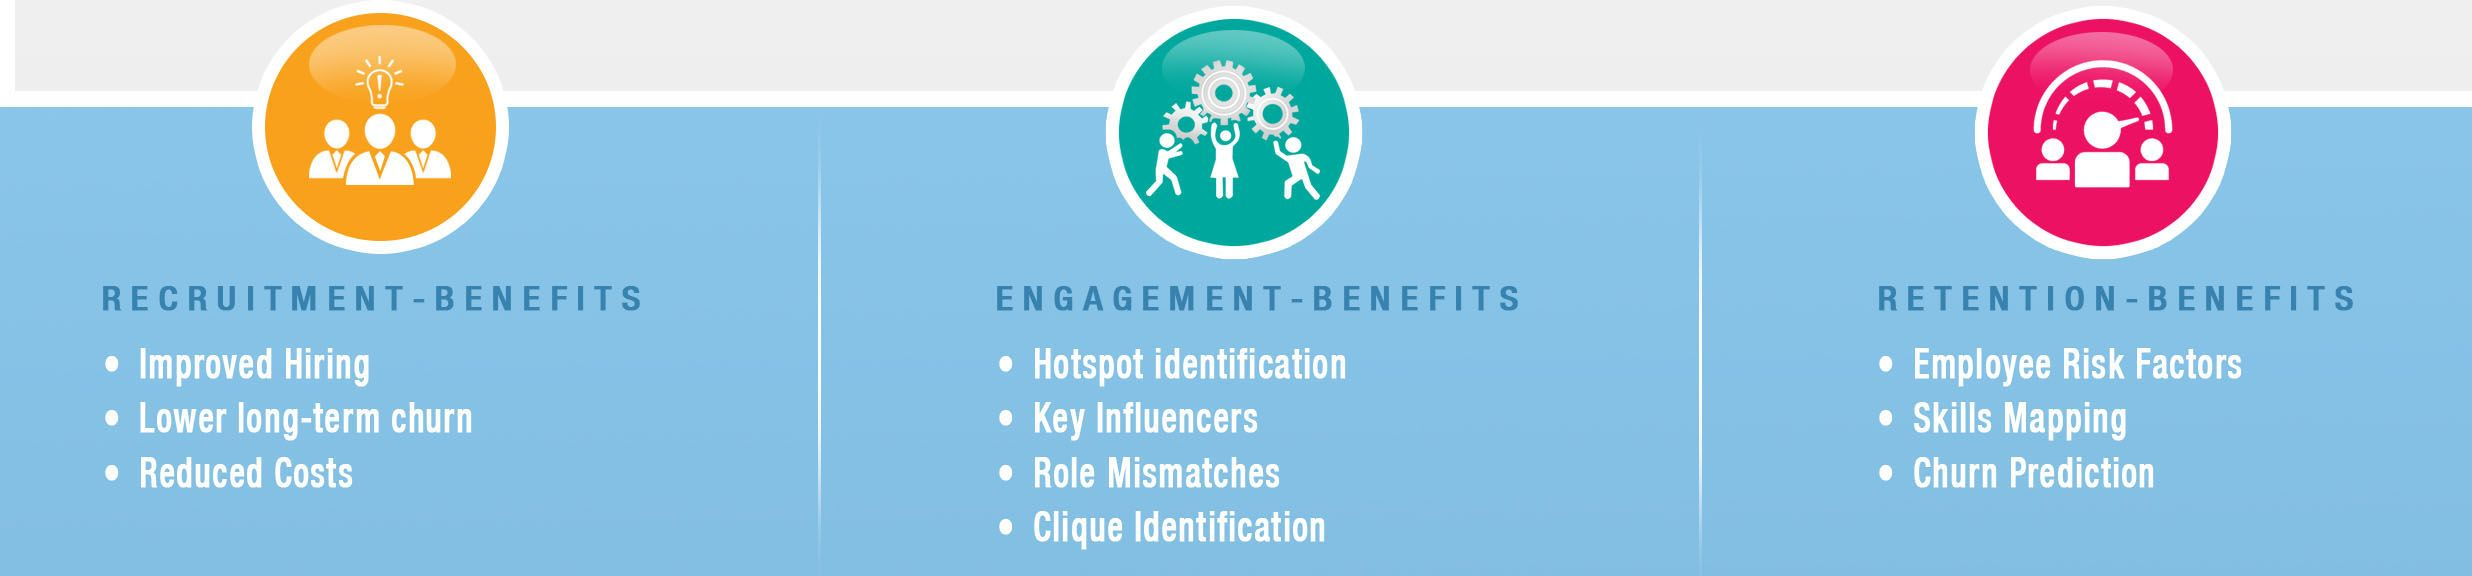 Benefits to our customers predictive analytics talent